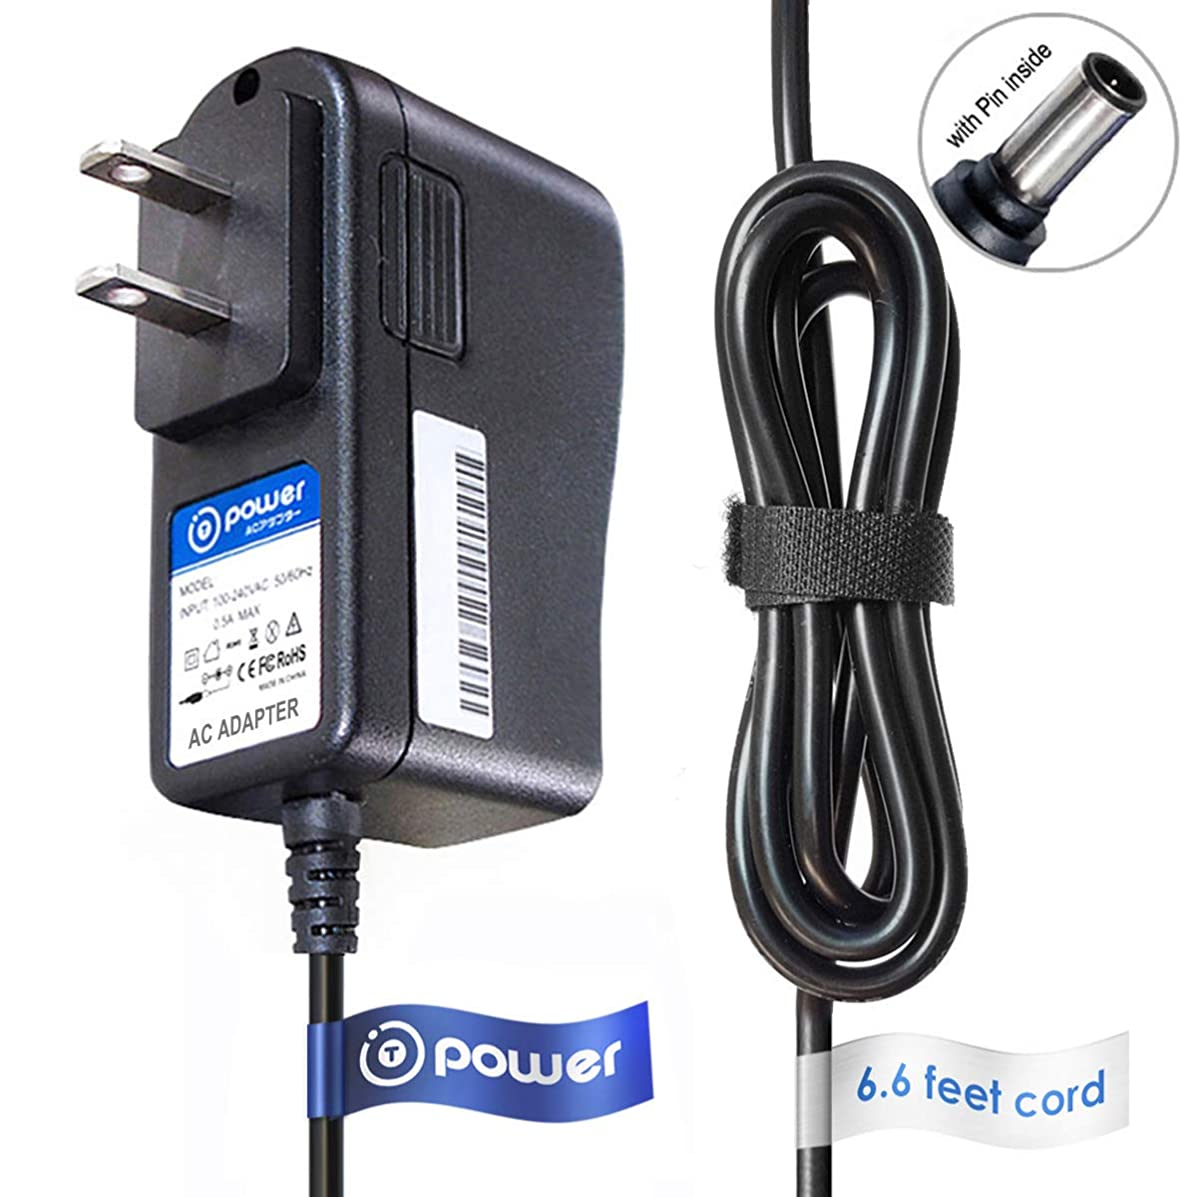 T-Power (6.6ft Long Cable) AC Adapter fit Compatible with Hp JetDirect 170x OfficeConnect j4102c AC DC Adapter POWER CHARGER SUPPLY CORD